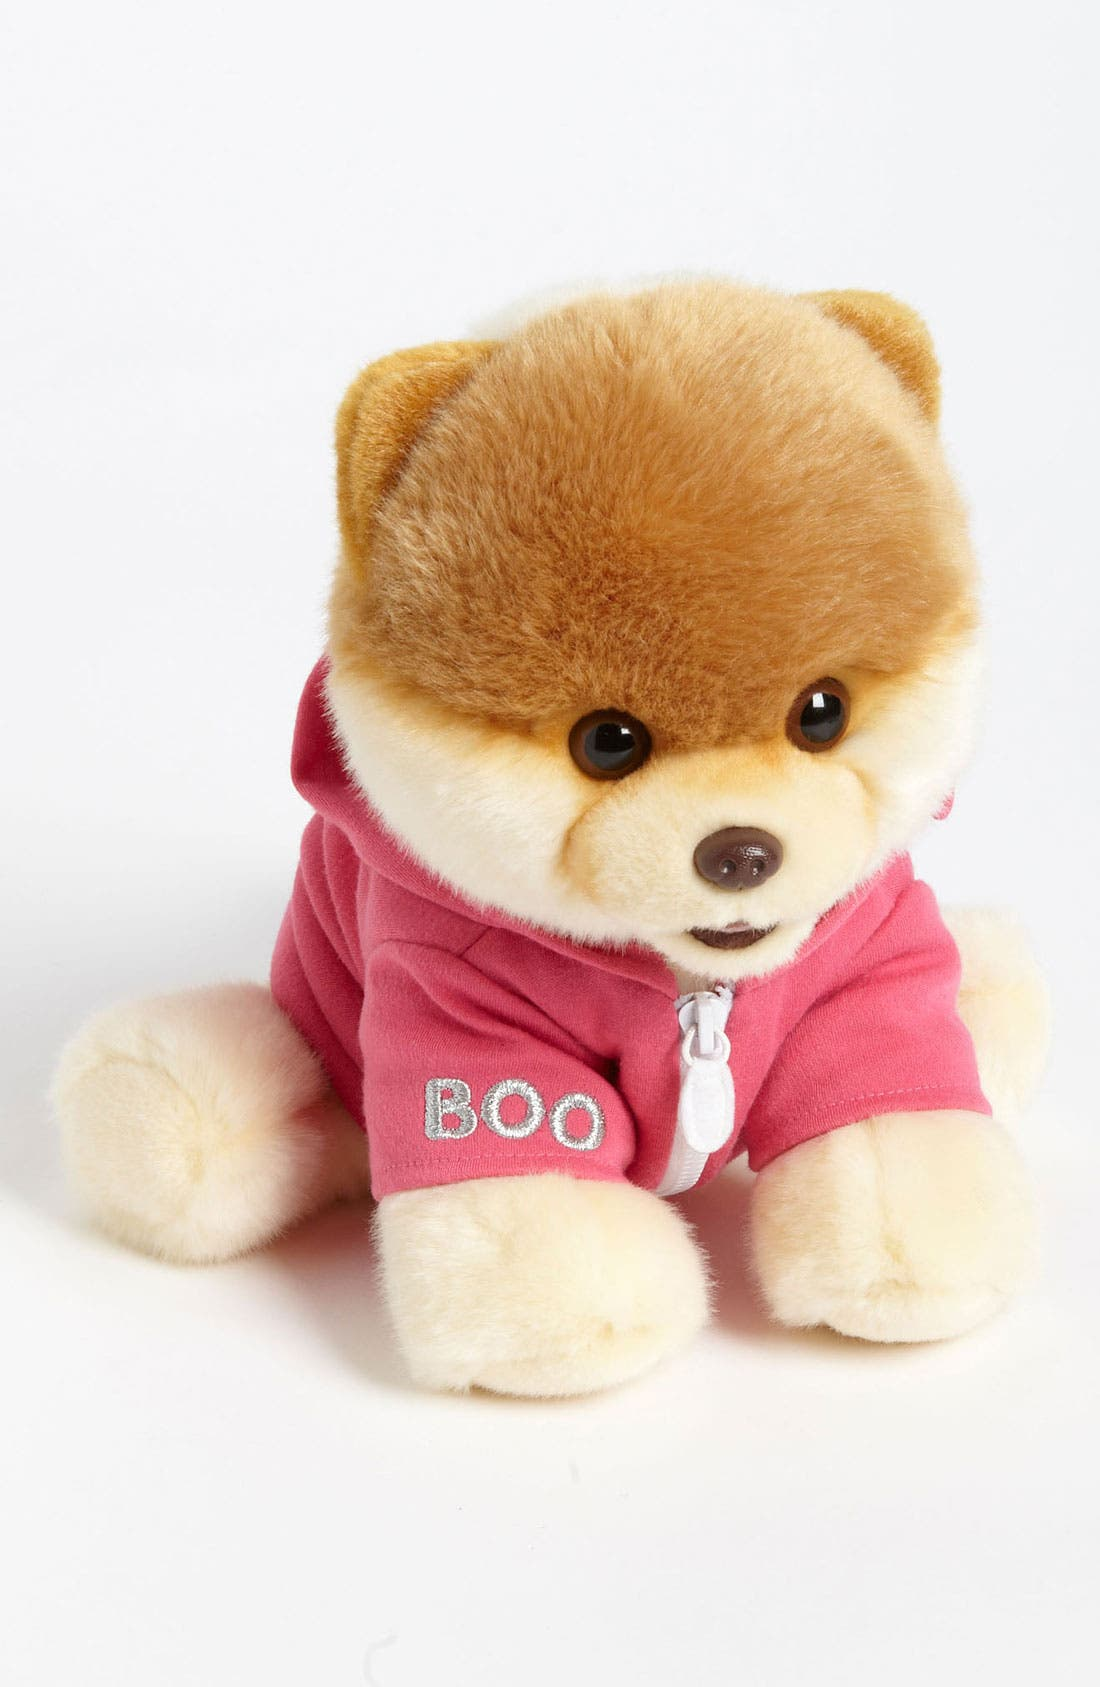 Main Image - Gund 'Boo - World's Cutest Dog' Life-Size Stuffed Animal